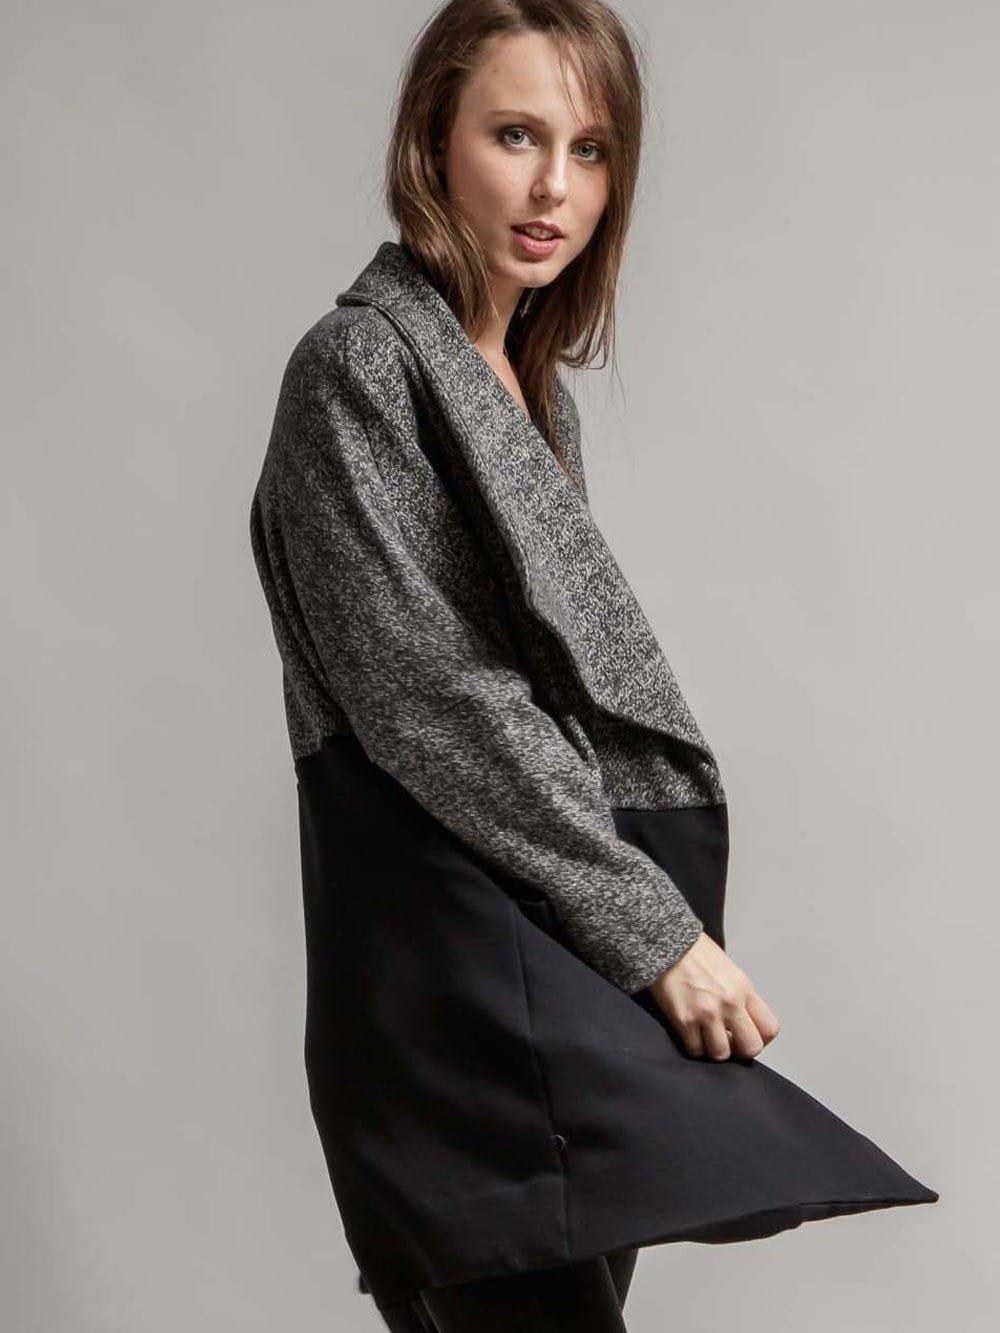 Black and gray coat with inner-polar Los